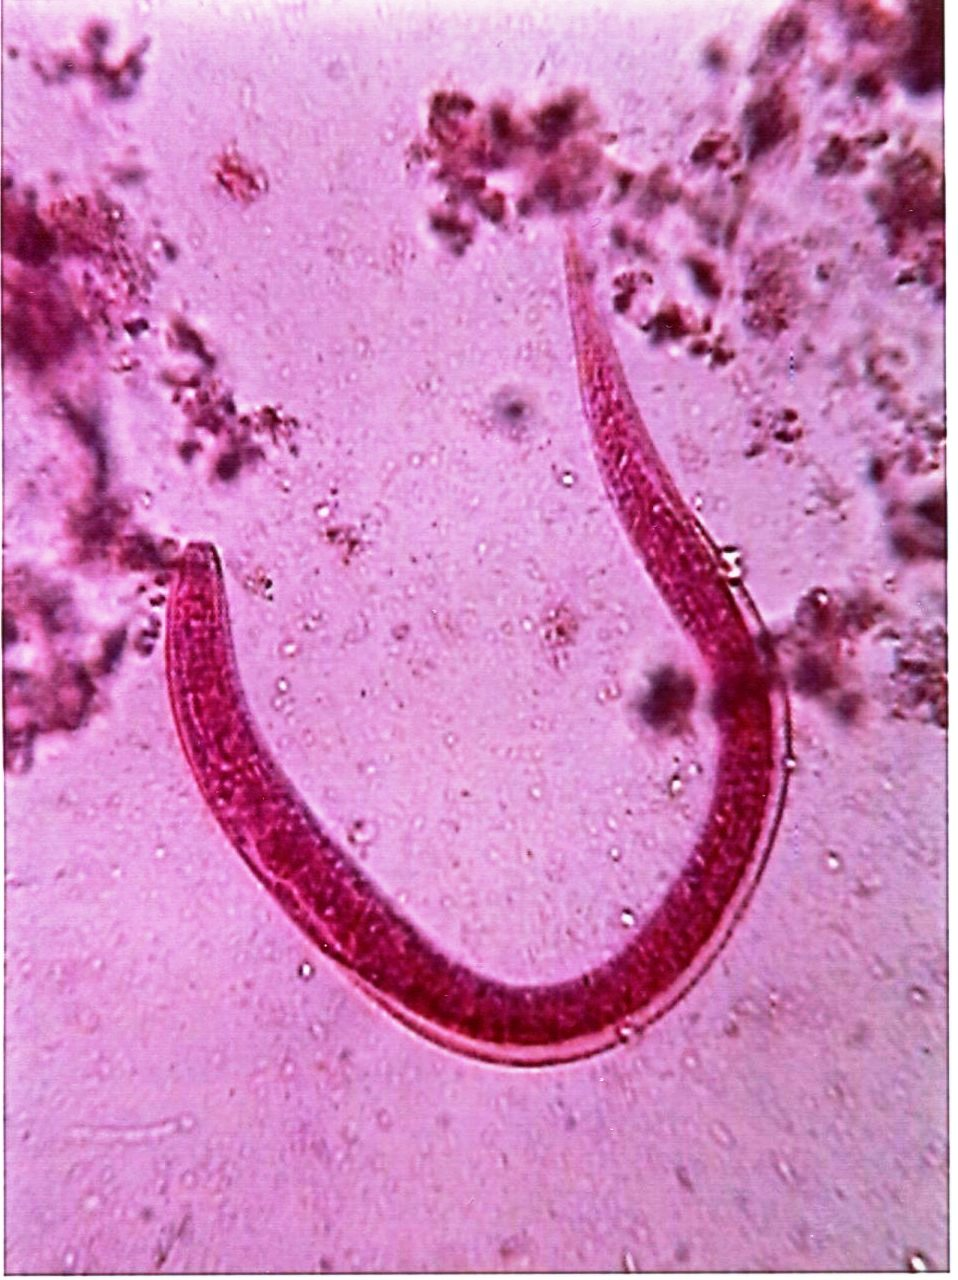 http://www.parasitetesting.com/images/gallery/Strongyloides%20stercoralis%20(Threadworm)%20larva.jpg